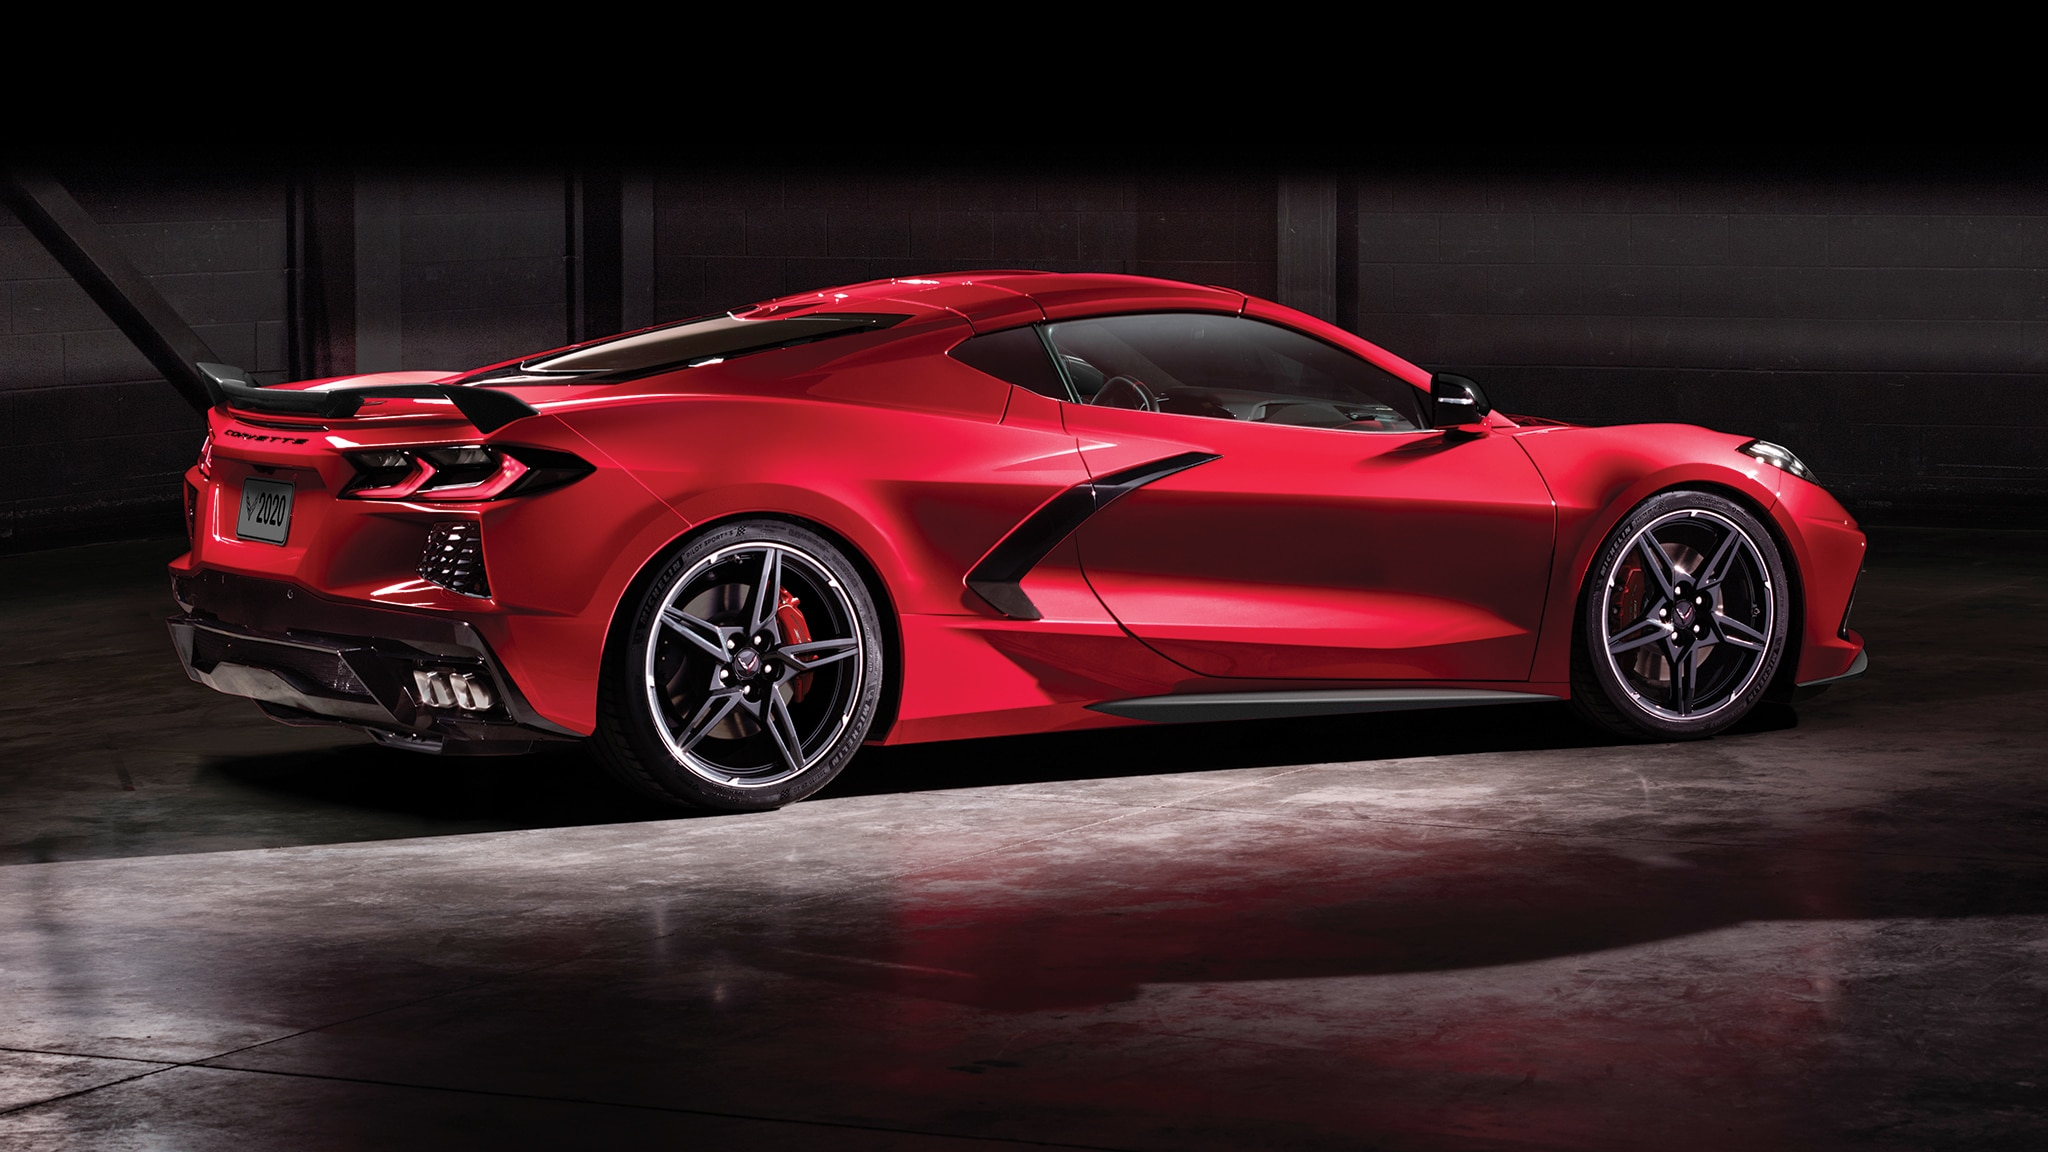 2020 Corvette Buyers Can Choose Their VIN | Automobile ...